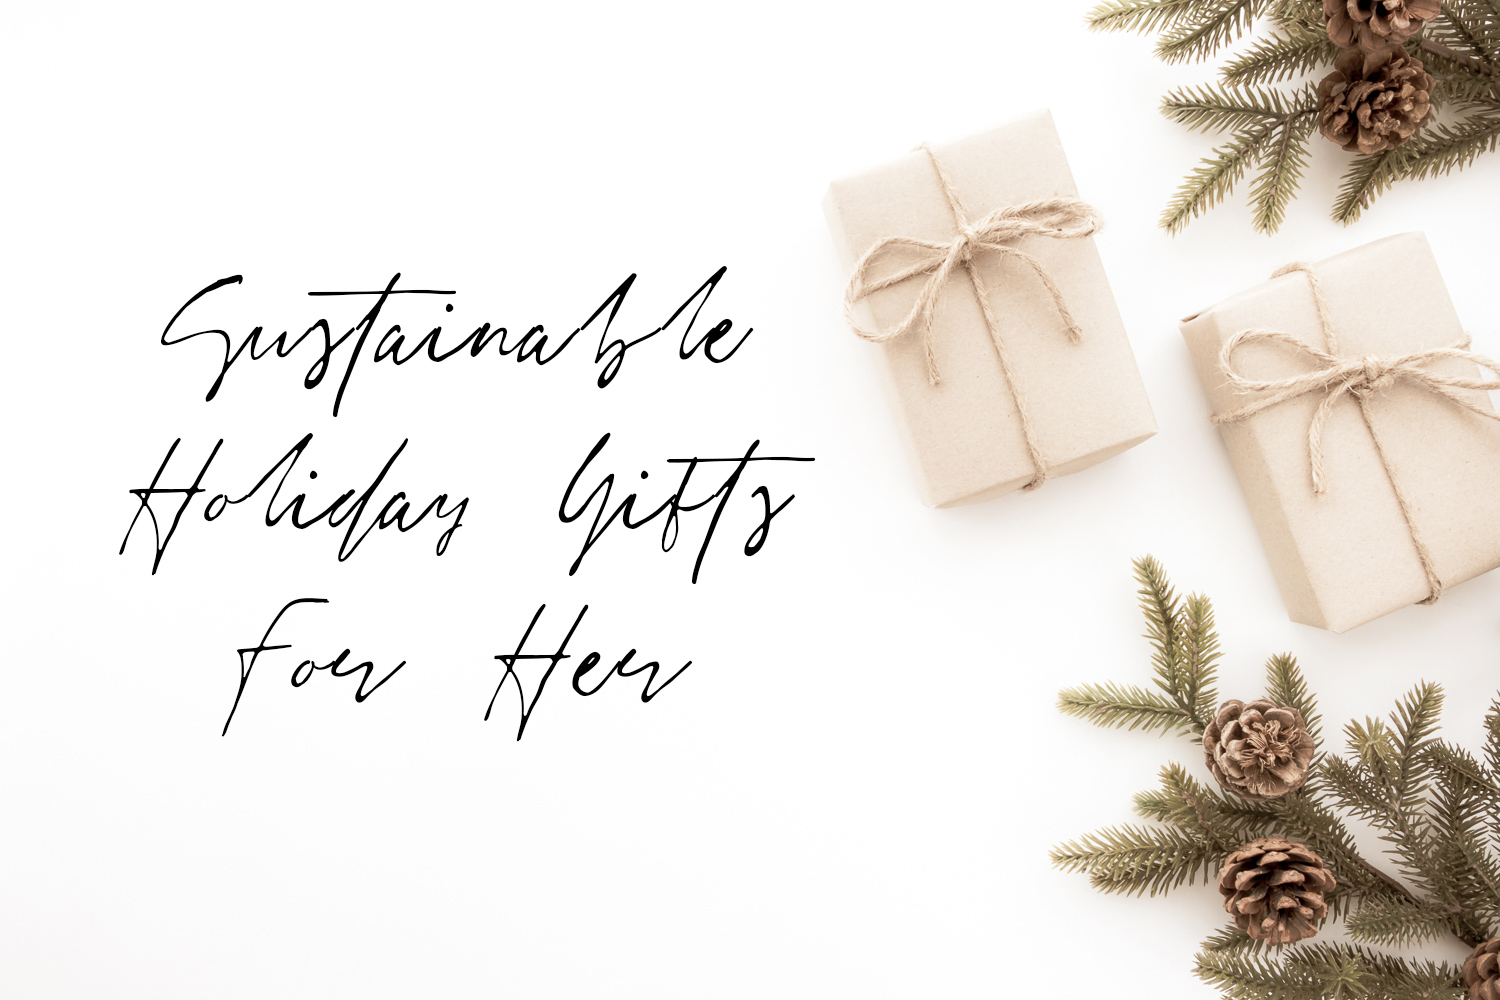 The Sustainable Holiday Gift Guides: Gifts for Her